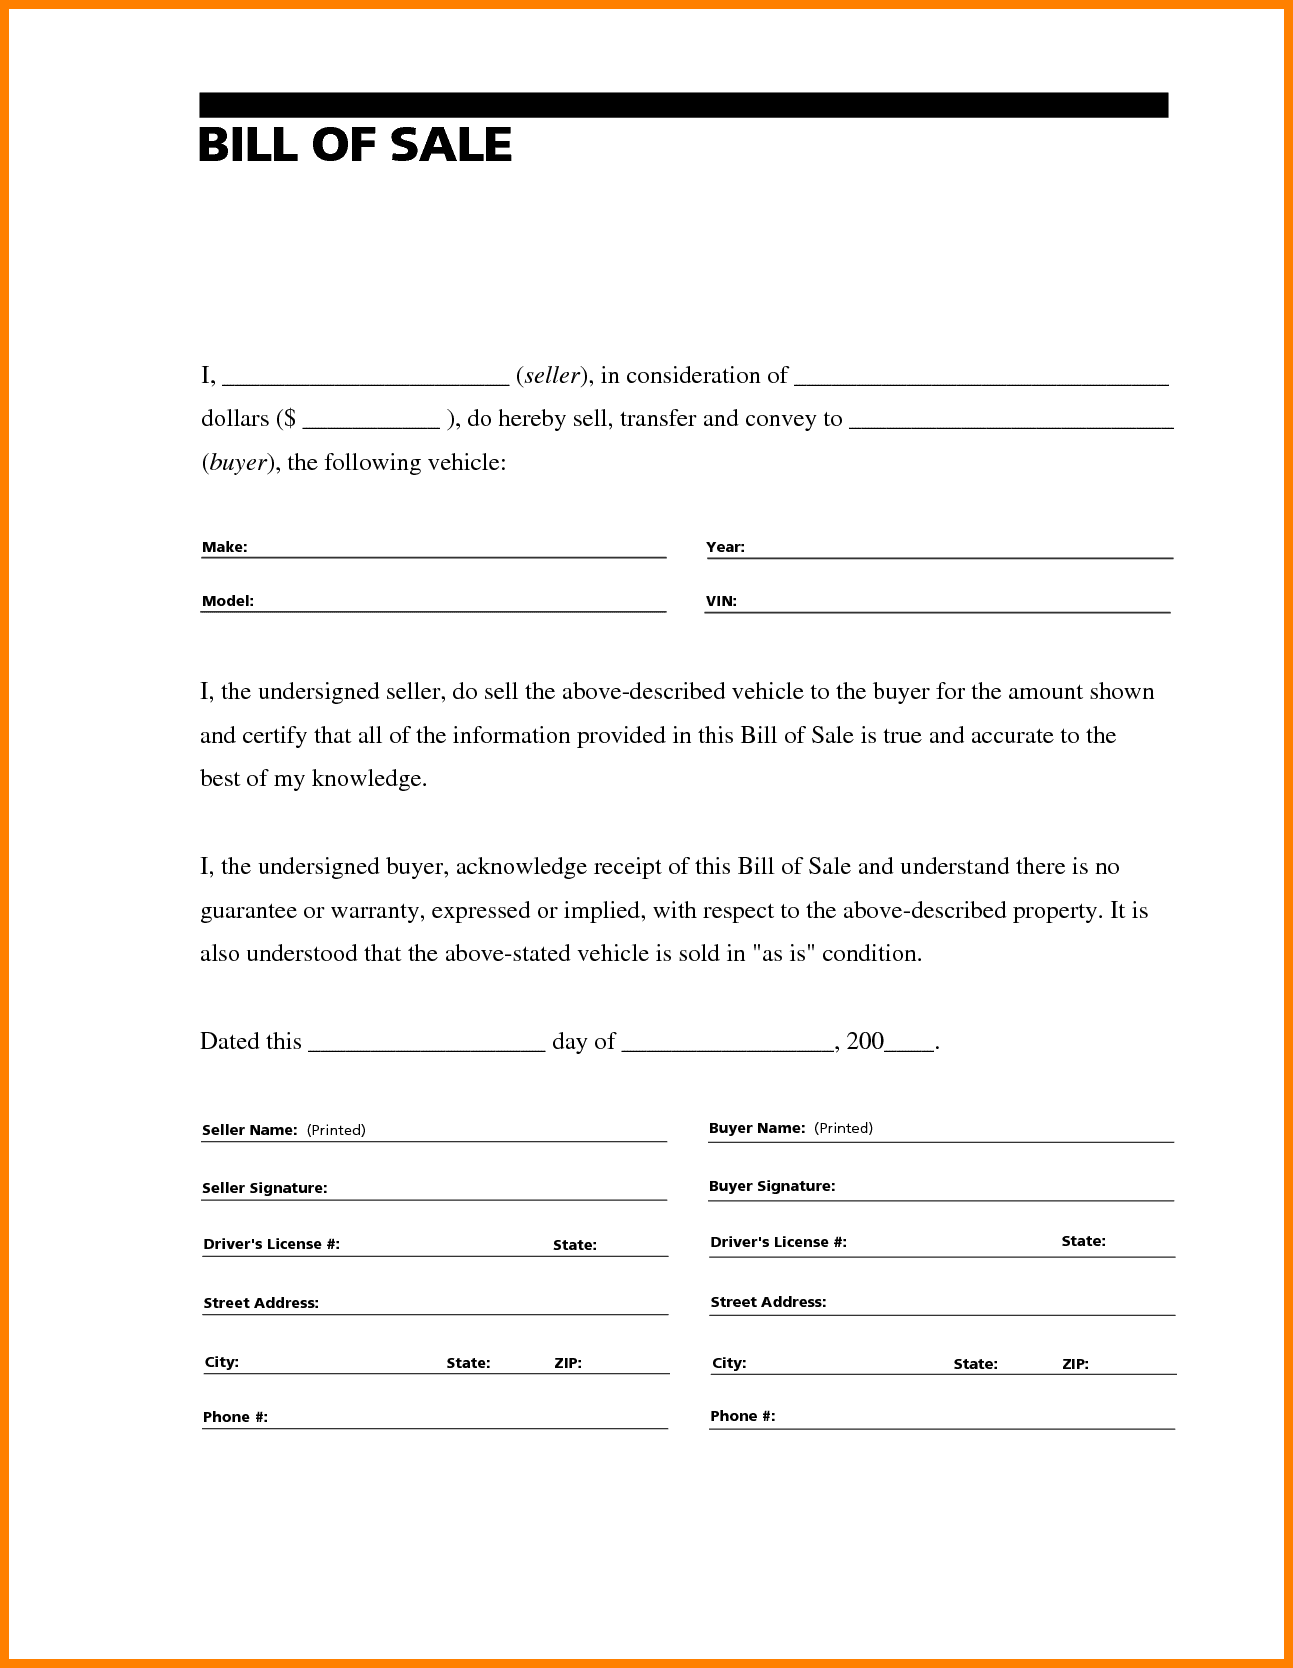 Bill of sale template for car microsoft word and motor vehicle bill of sale printable